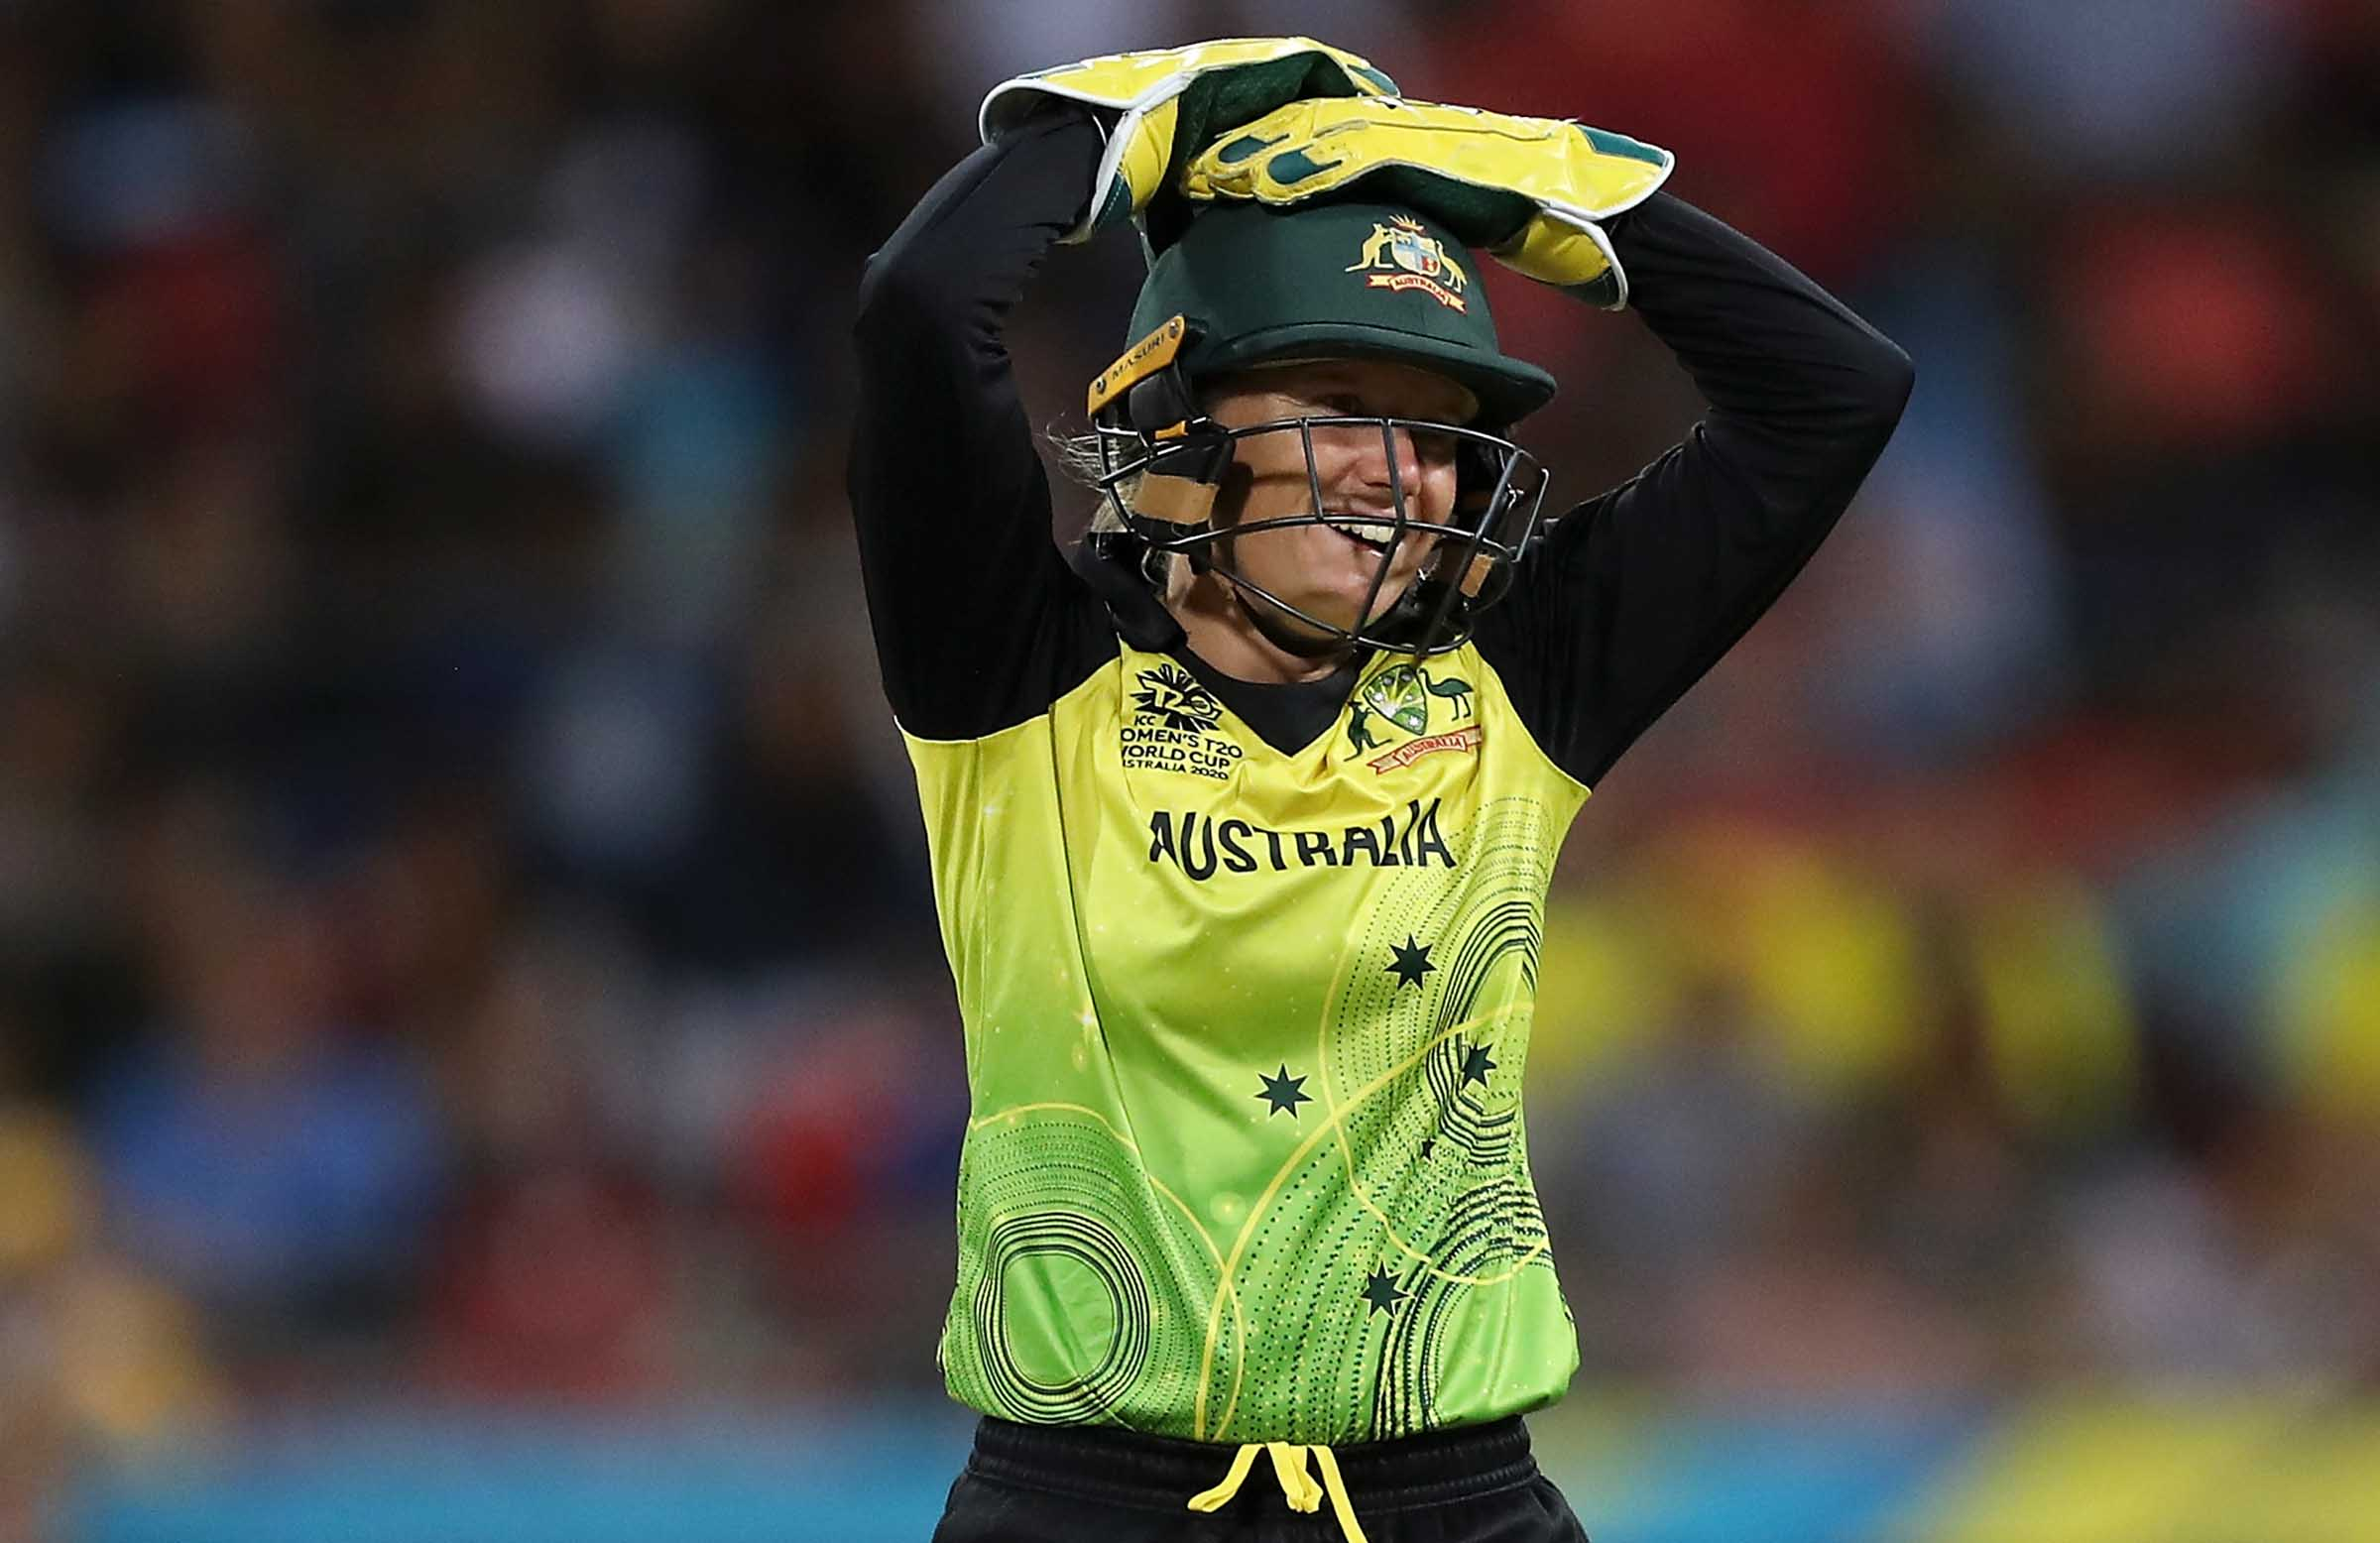 Healy during Australia's defeat to India // Getty